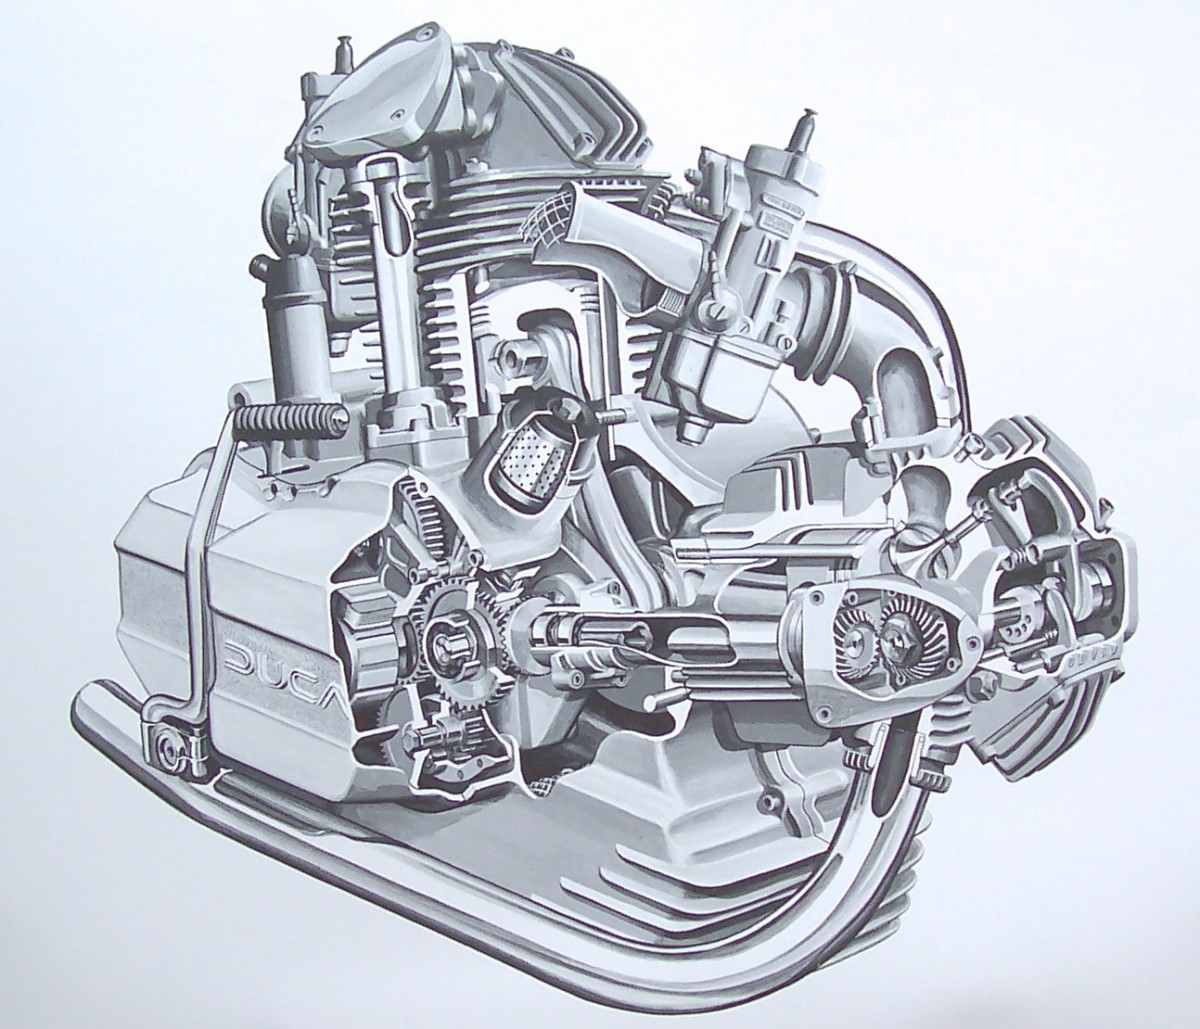 hight resolution of 1200x1029 engine drawings bambrick studio